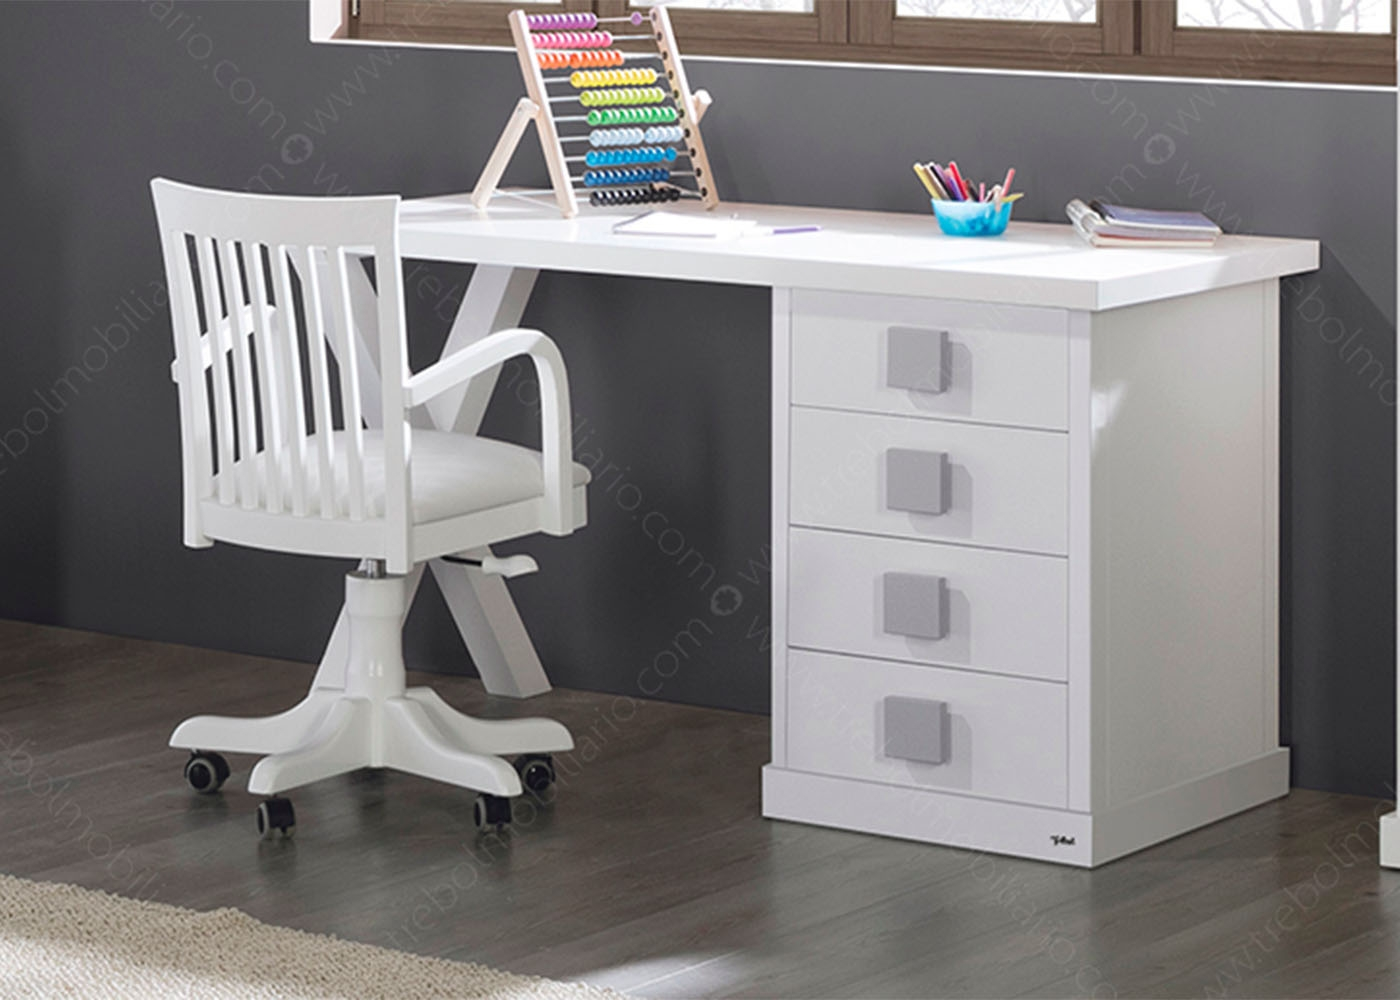 bureau l 150 cm avec caisson 4 tiroirs 16 couleurs ksl living. Black Bedroom Furniture Sets. Home Design Ideas